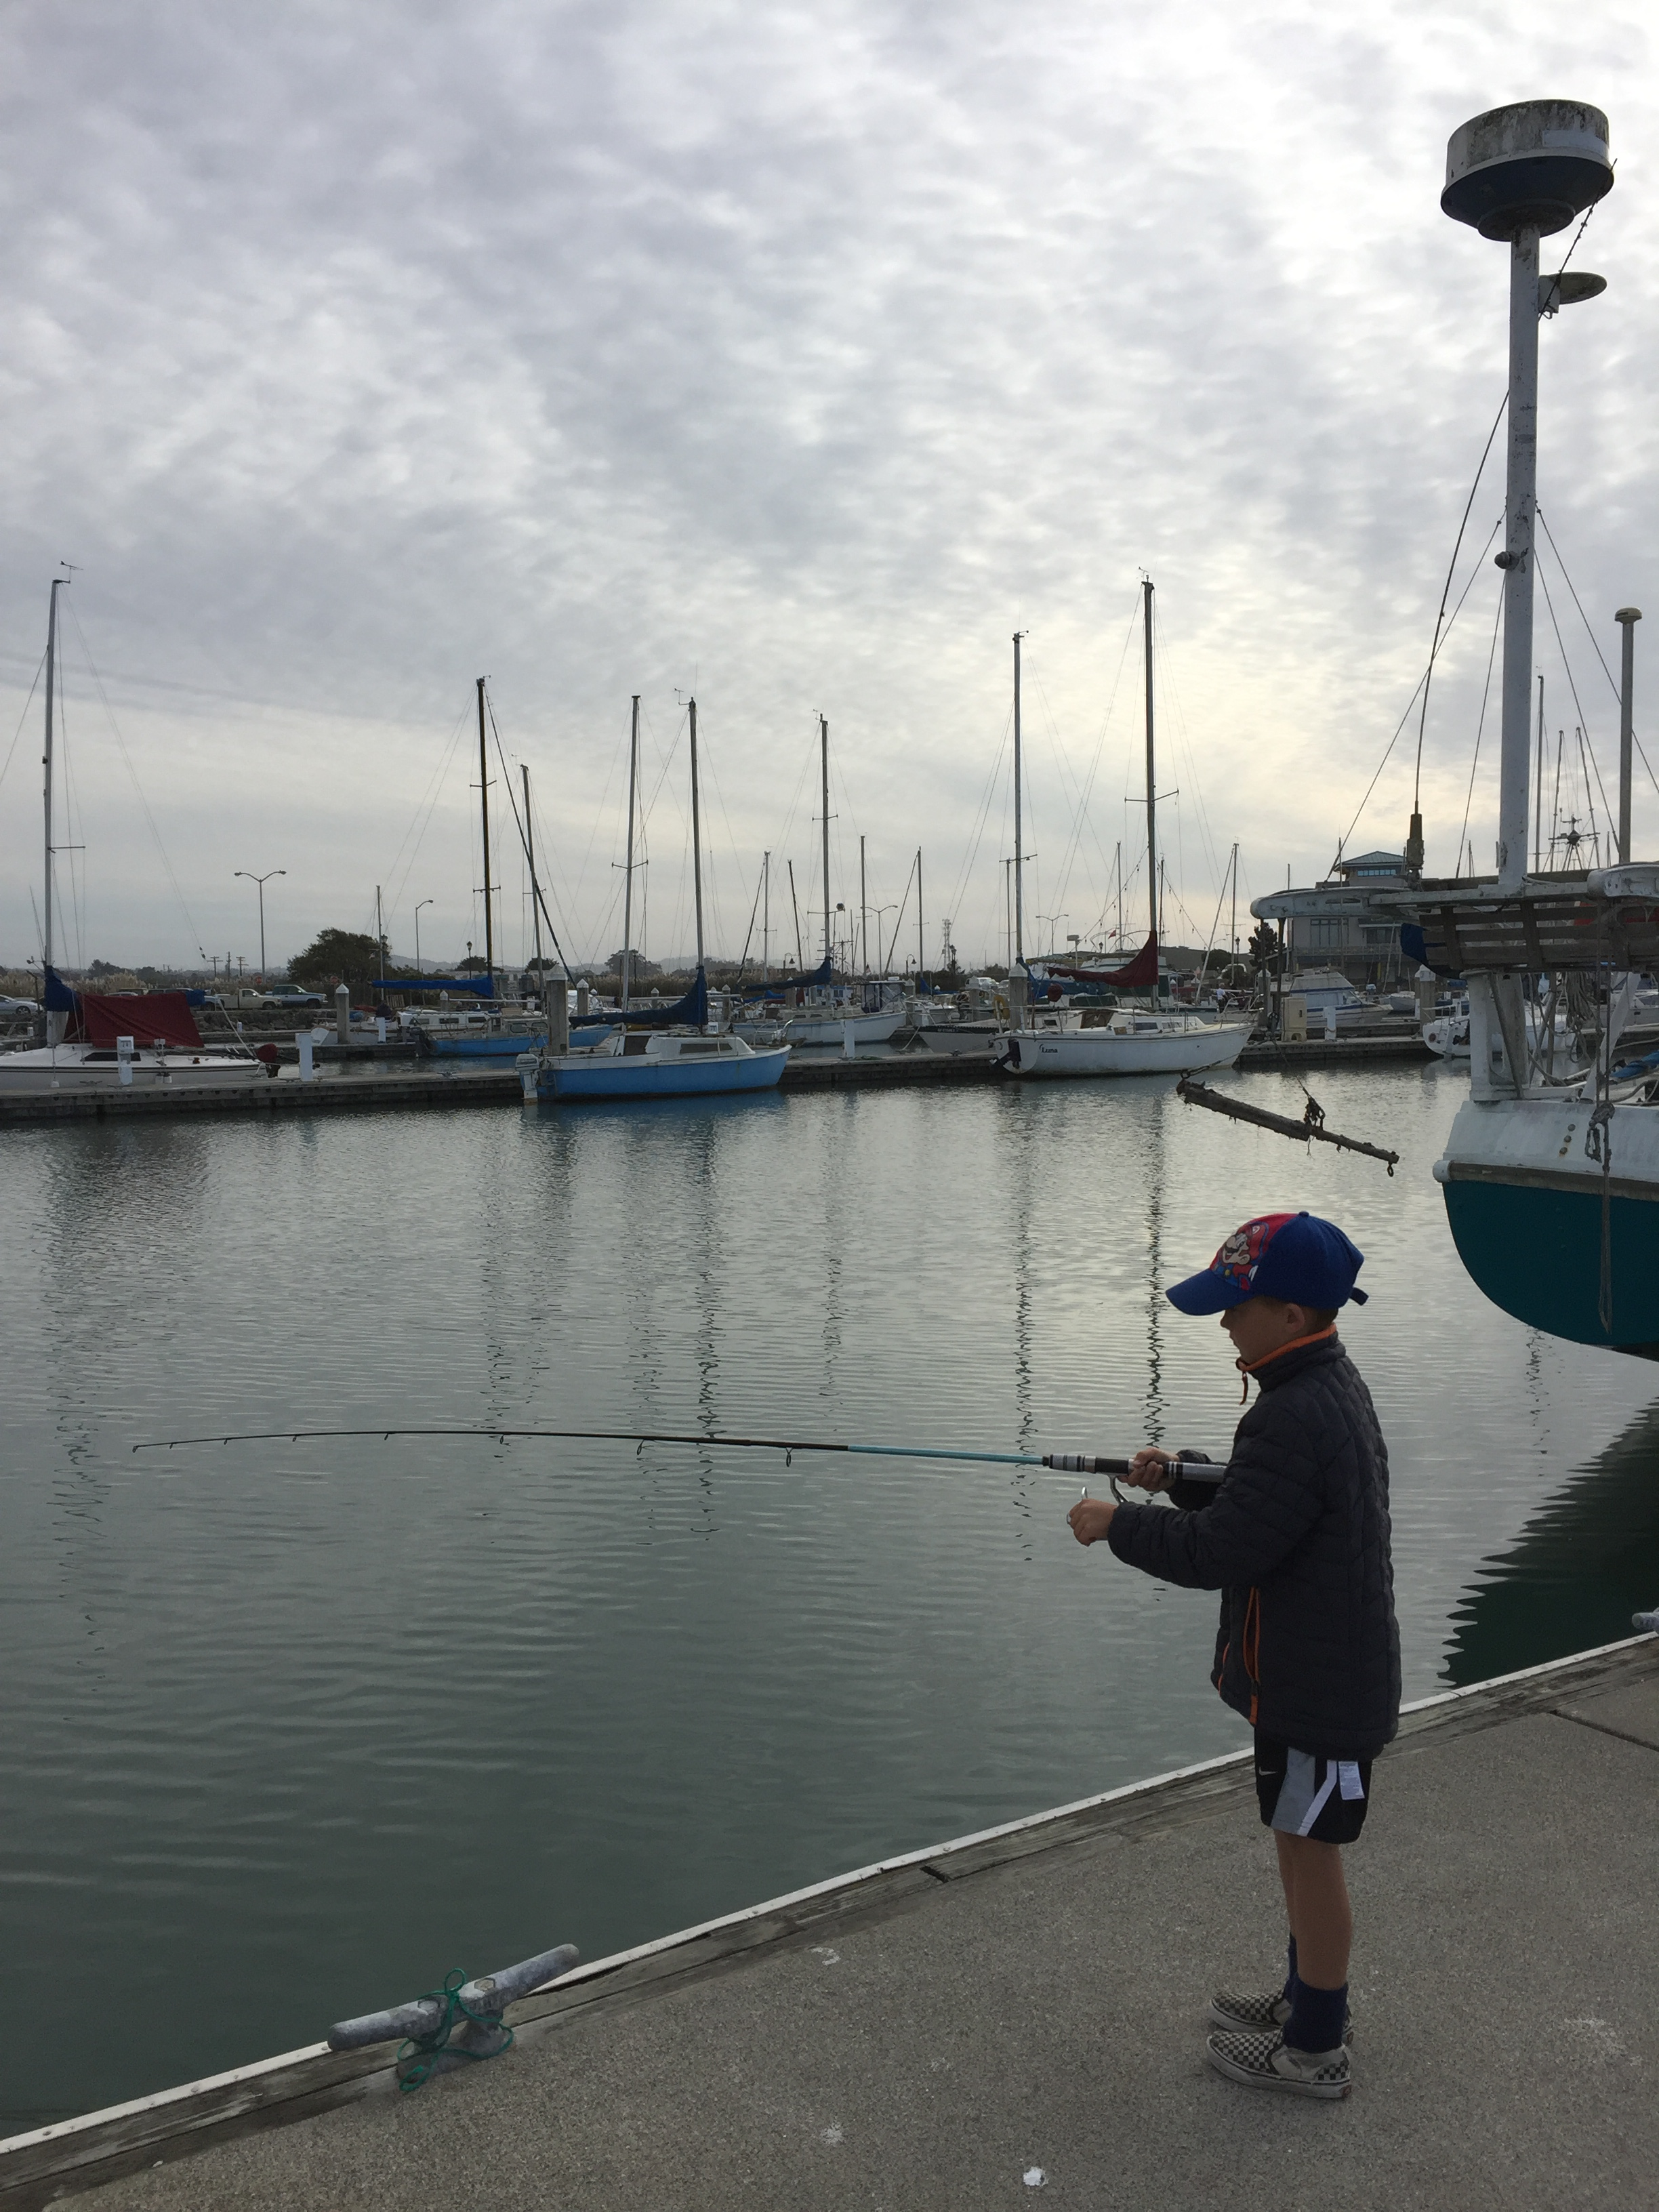 Image of boy fishing from pier